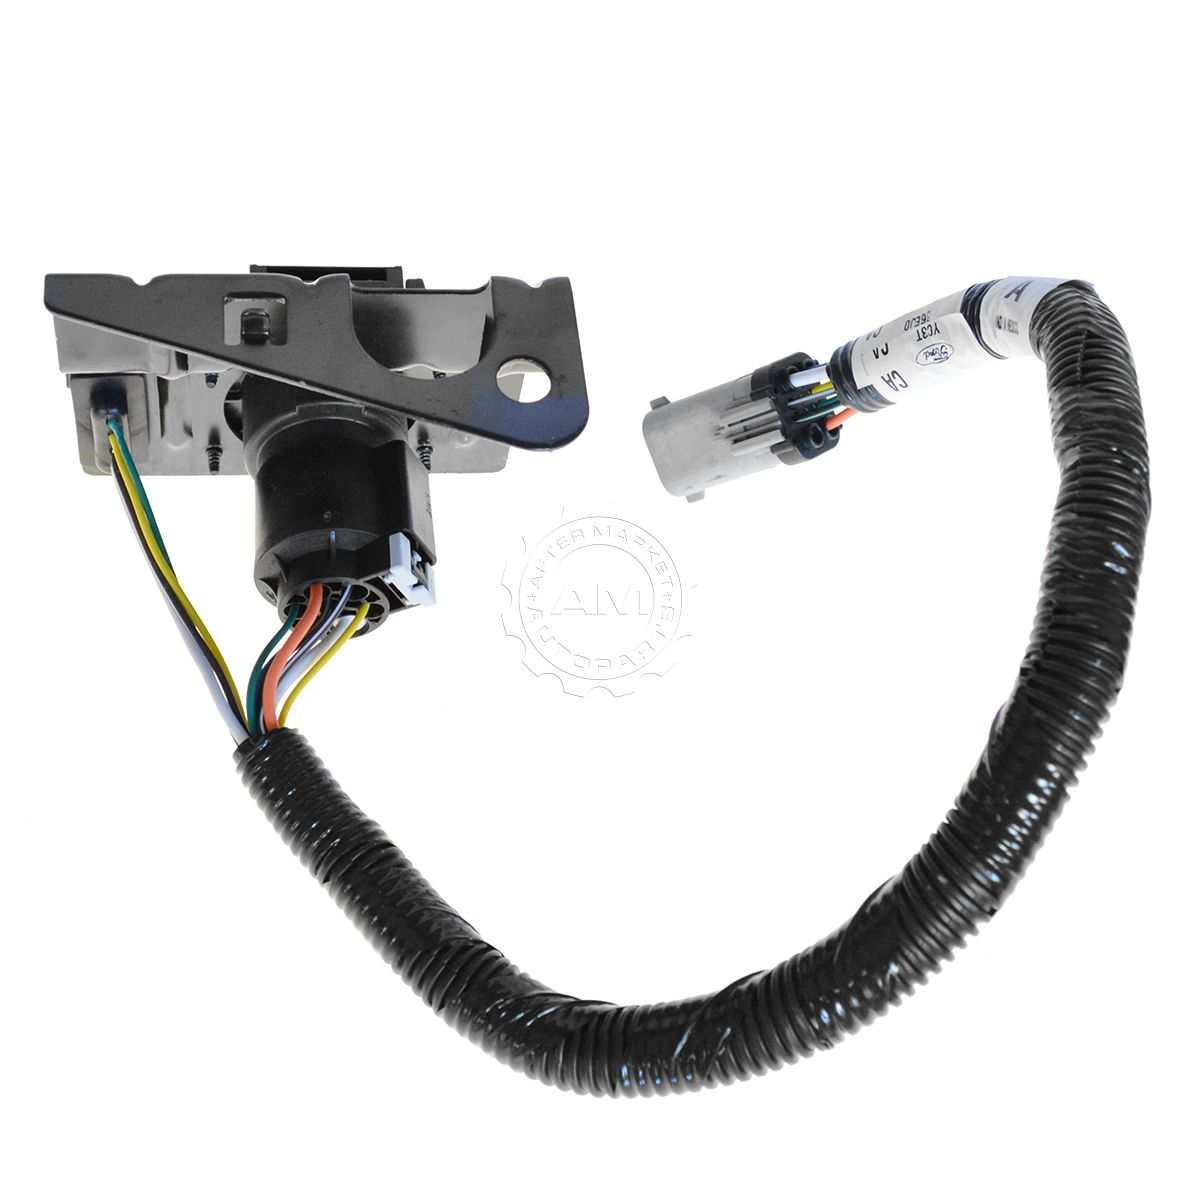 Trailer Hitch 4 7 Pin Wiring Harness 1999 2001 Ford F250 F350 F450